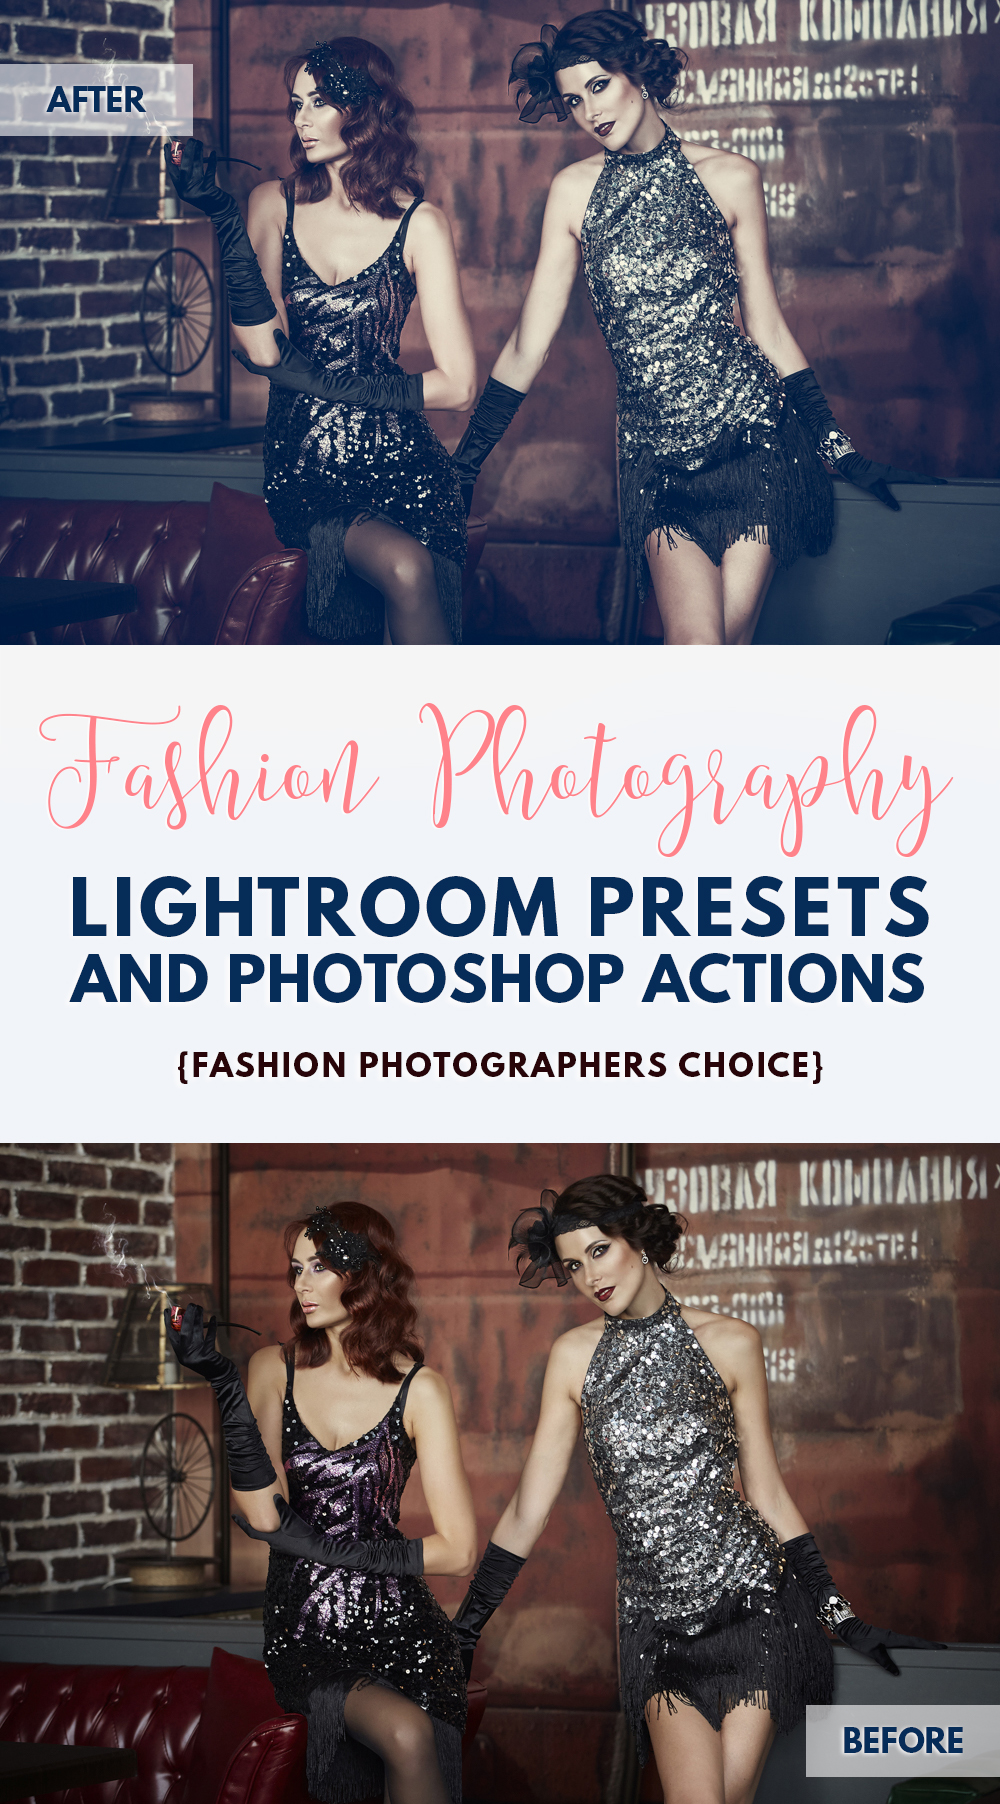 Best Lightroom presets for fashion photography